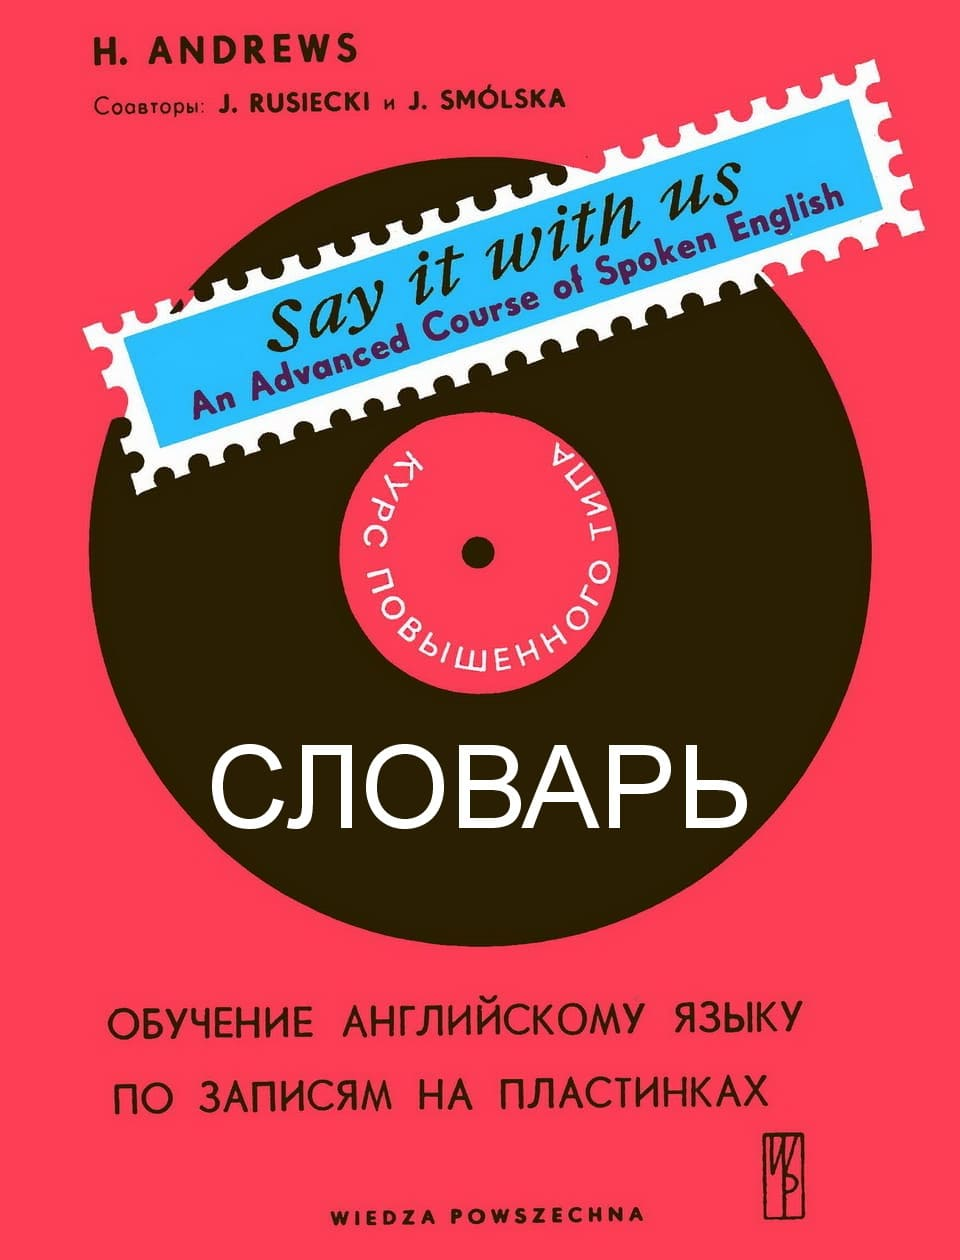 0 Say It With Us СЛОВАРЬ